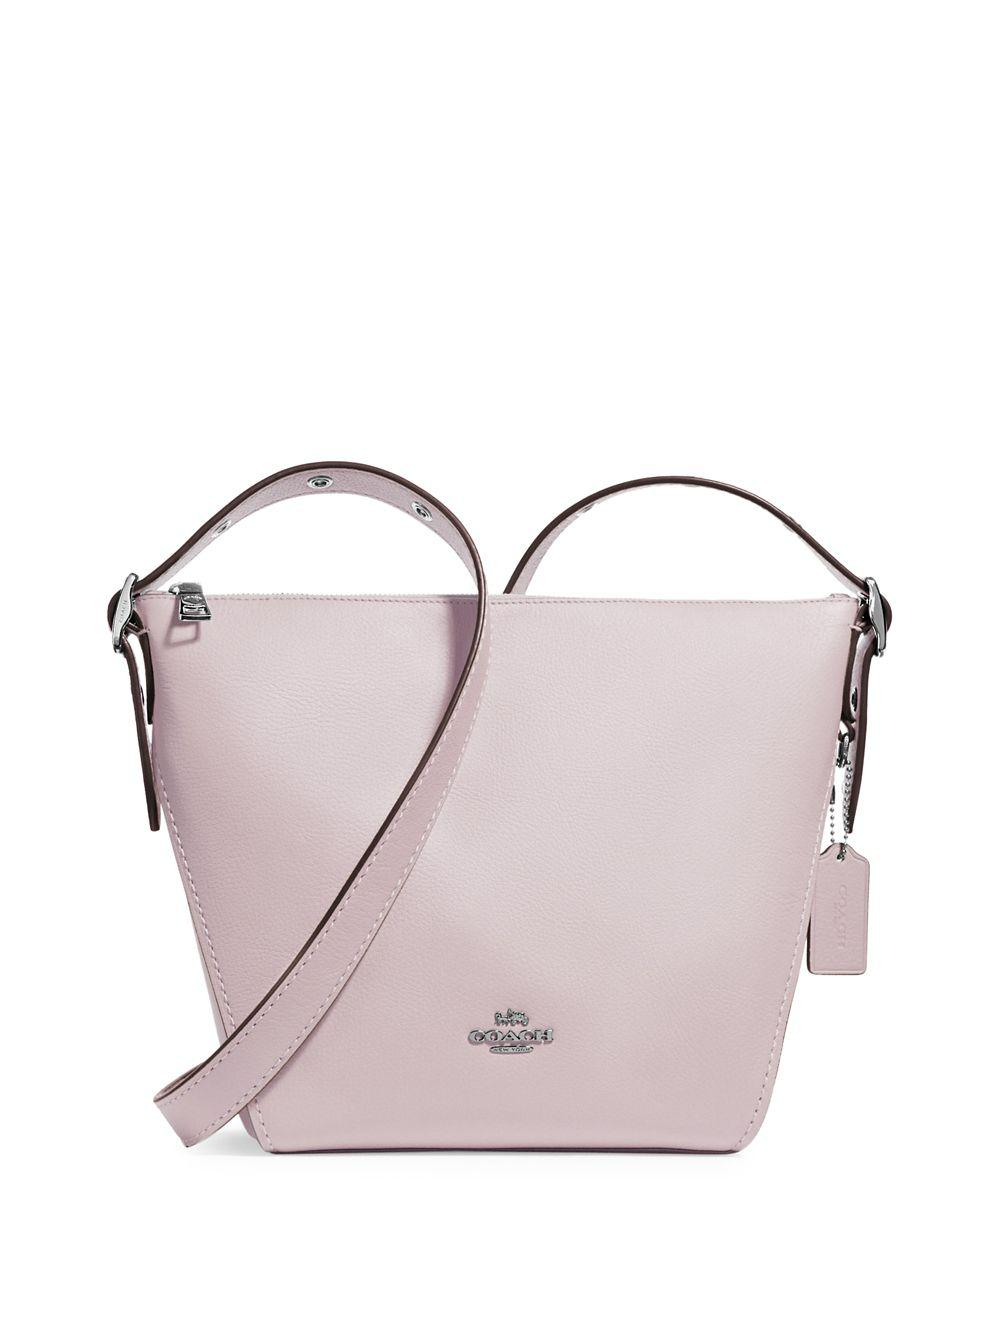 80b383b0be1d Coach Small Leather Dufflette Bag in Pink - Lyst